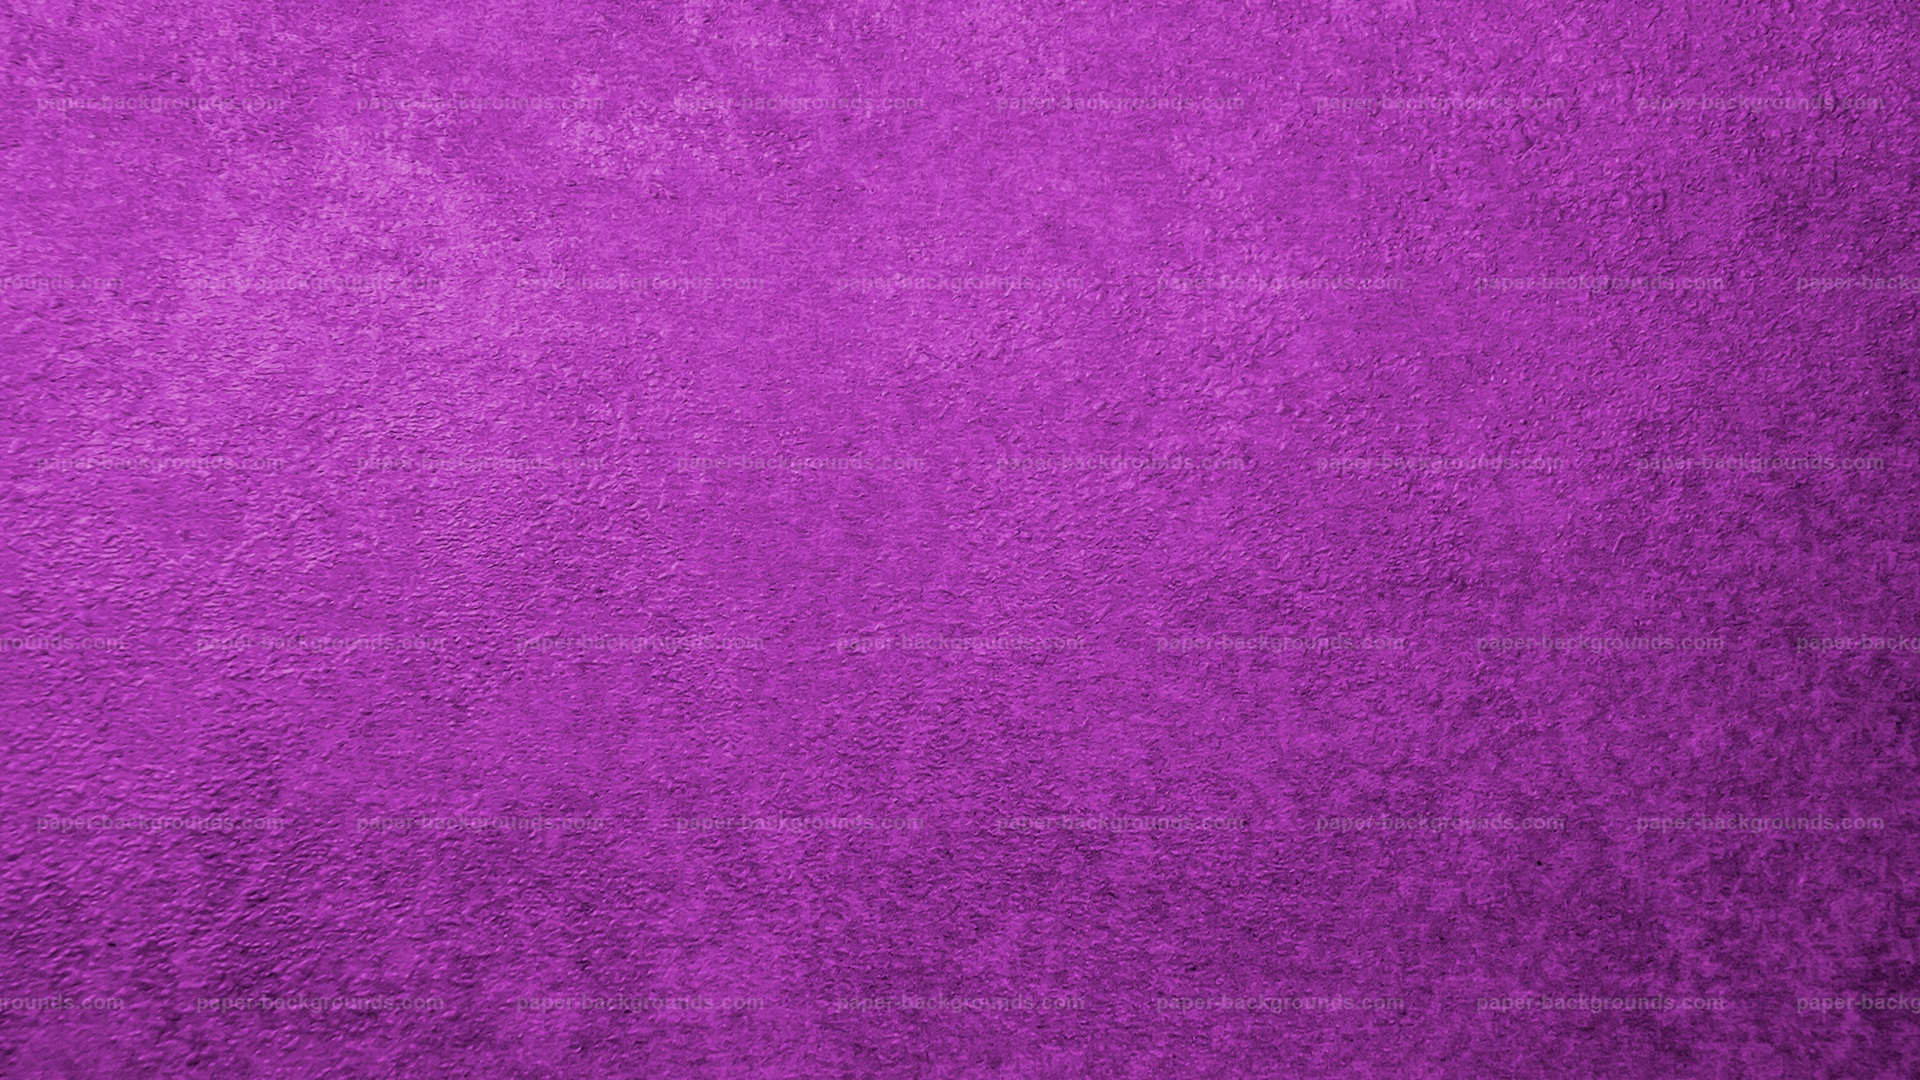 lavender vintage background - photo #35